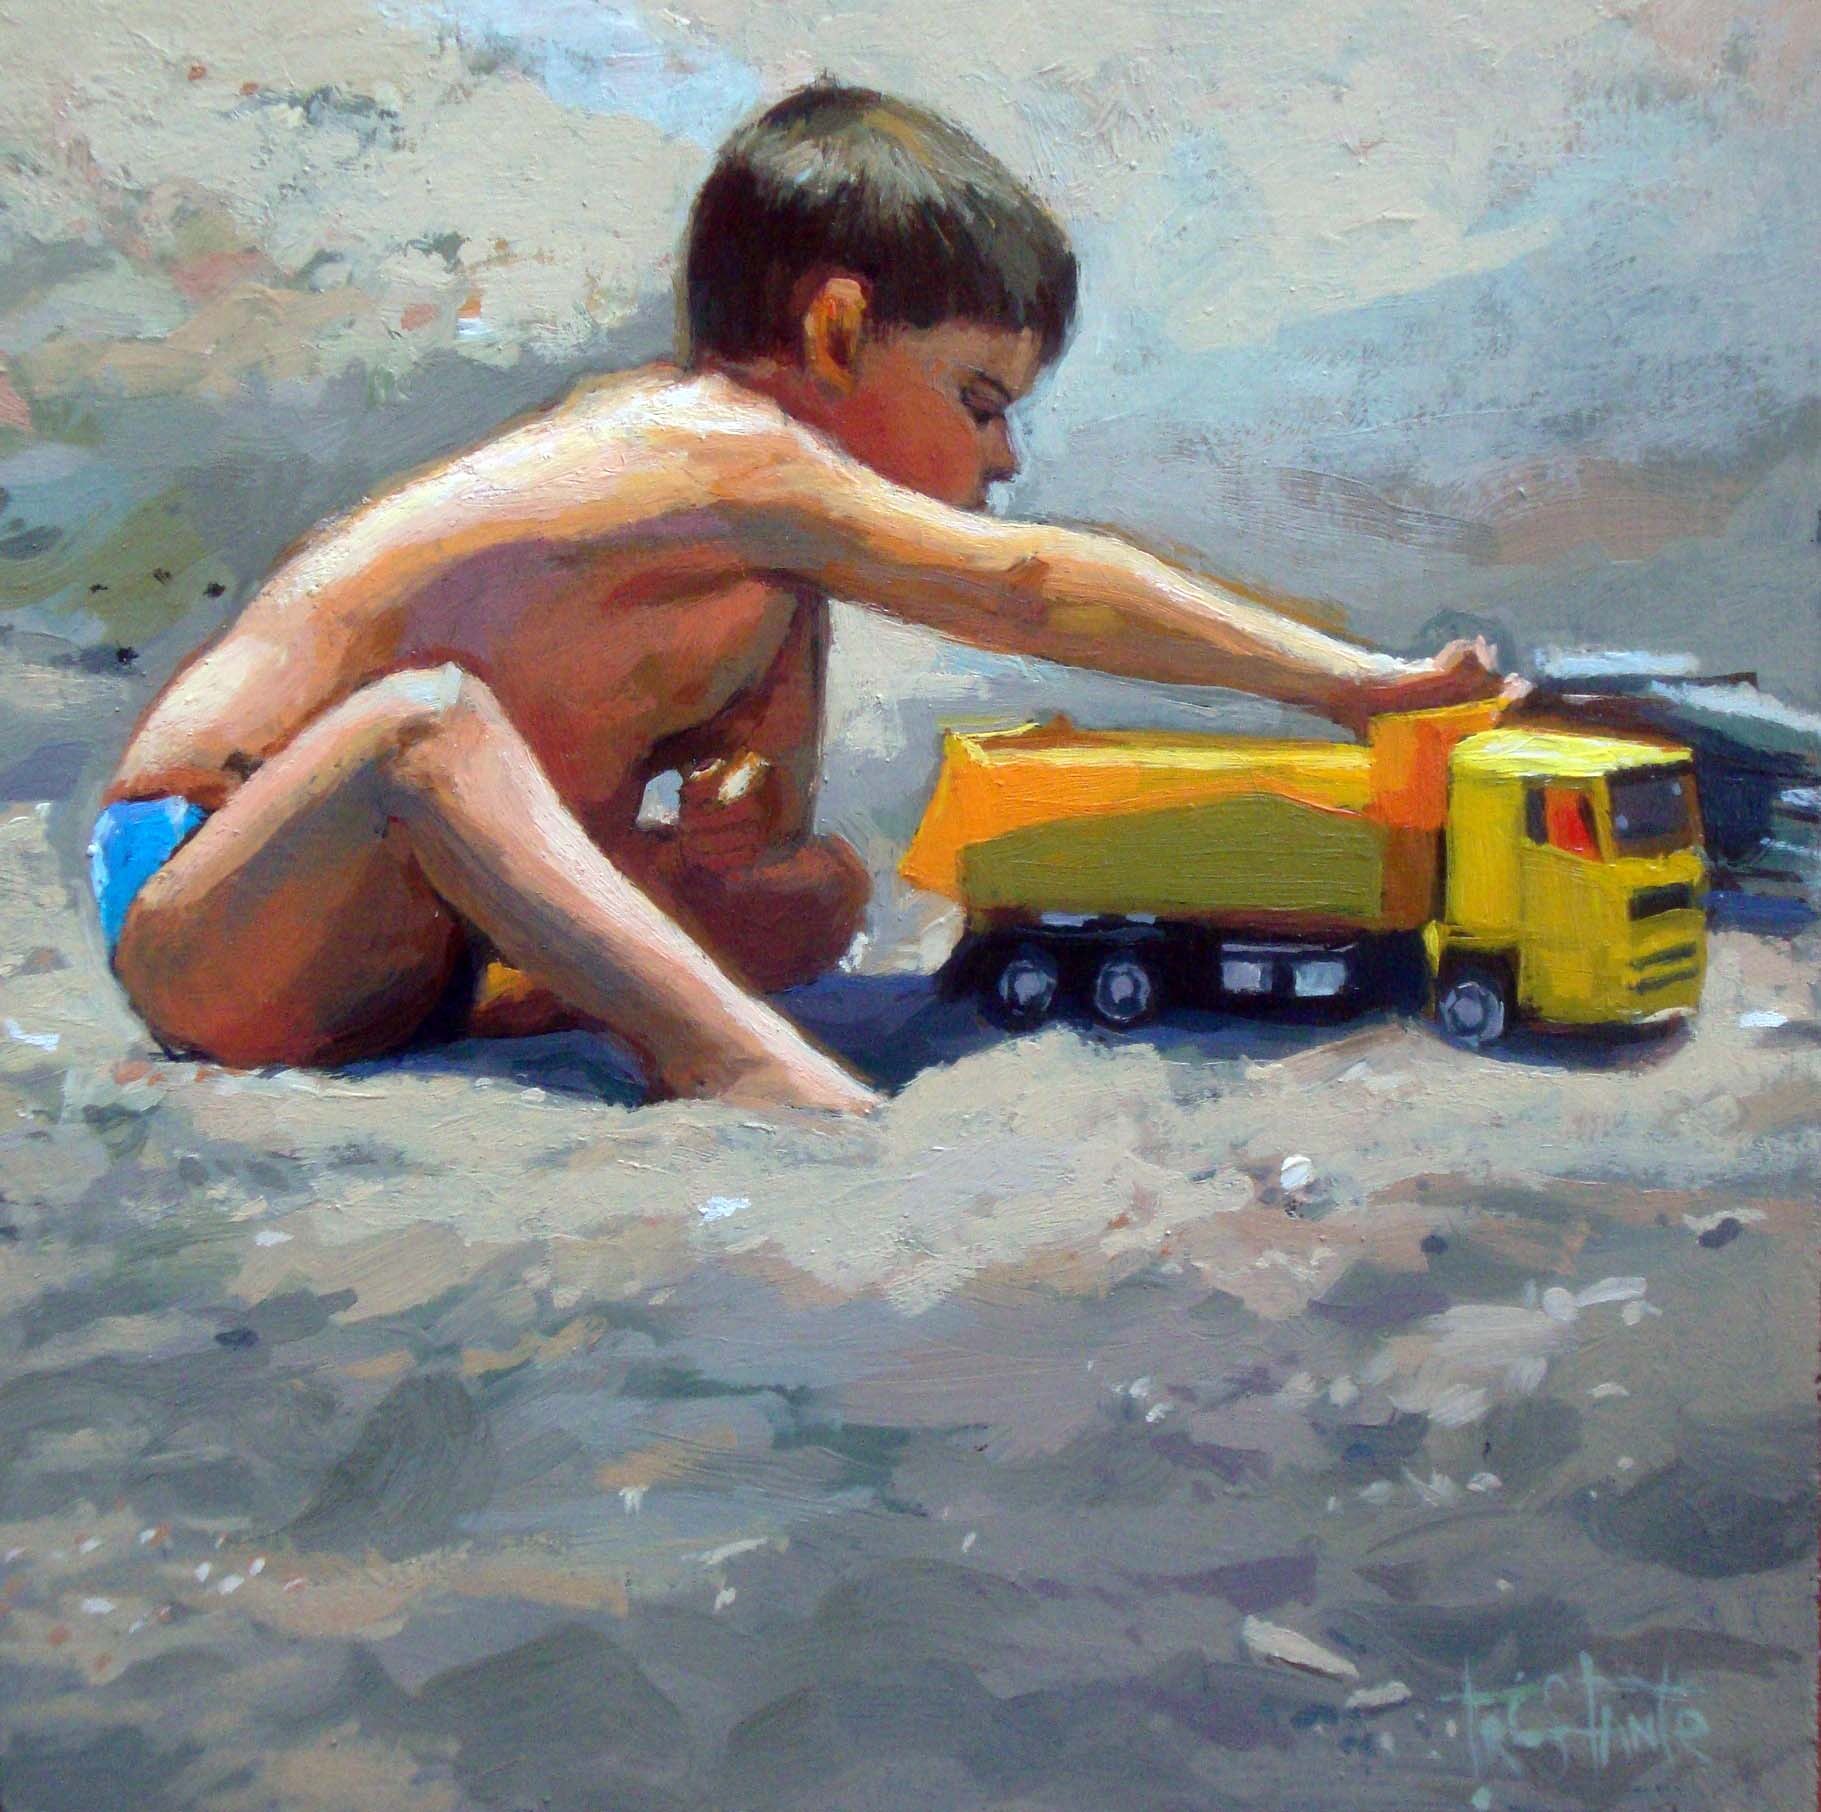 """Playing to be trucker"" original fine art by Víctor Tristante"